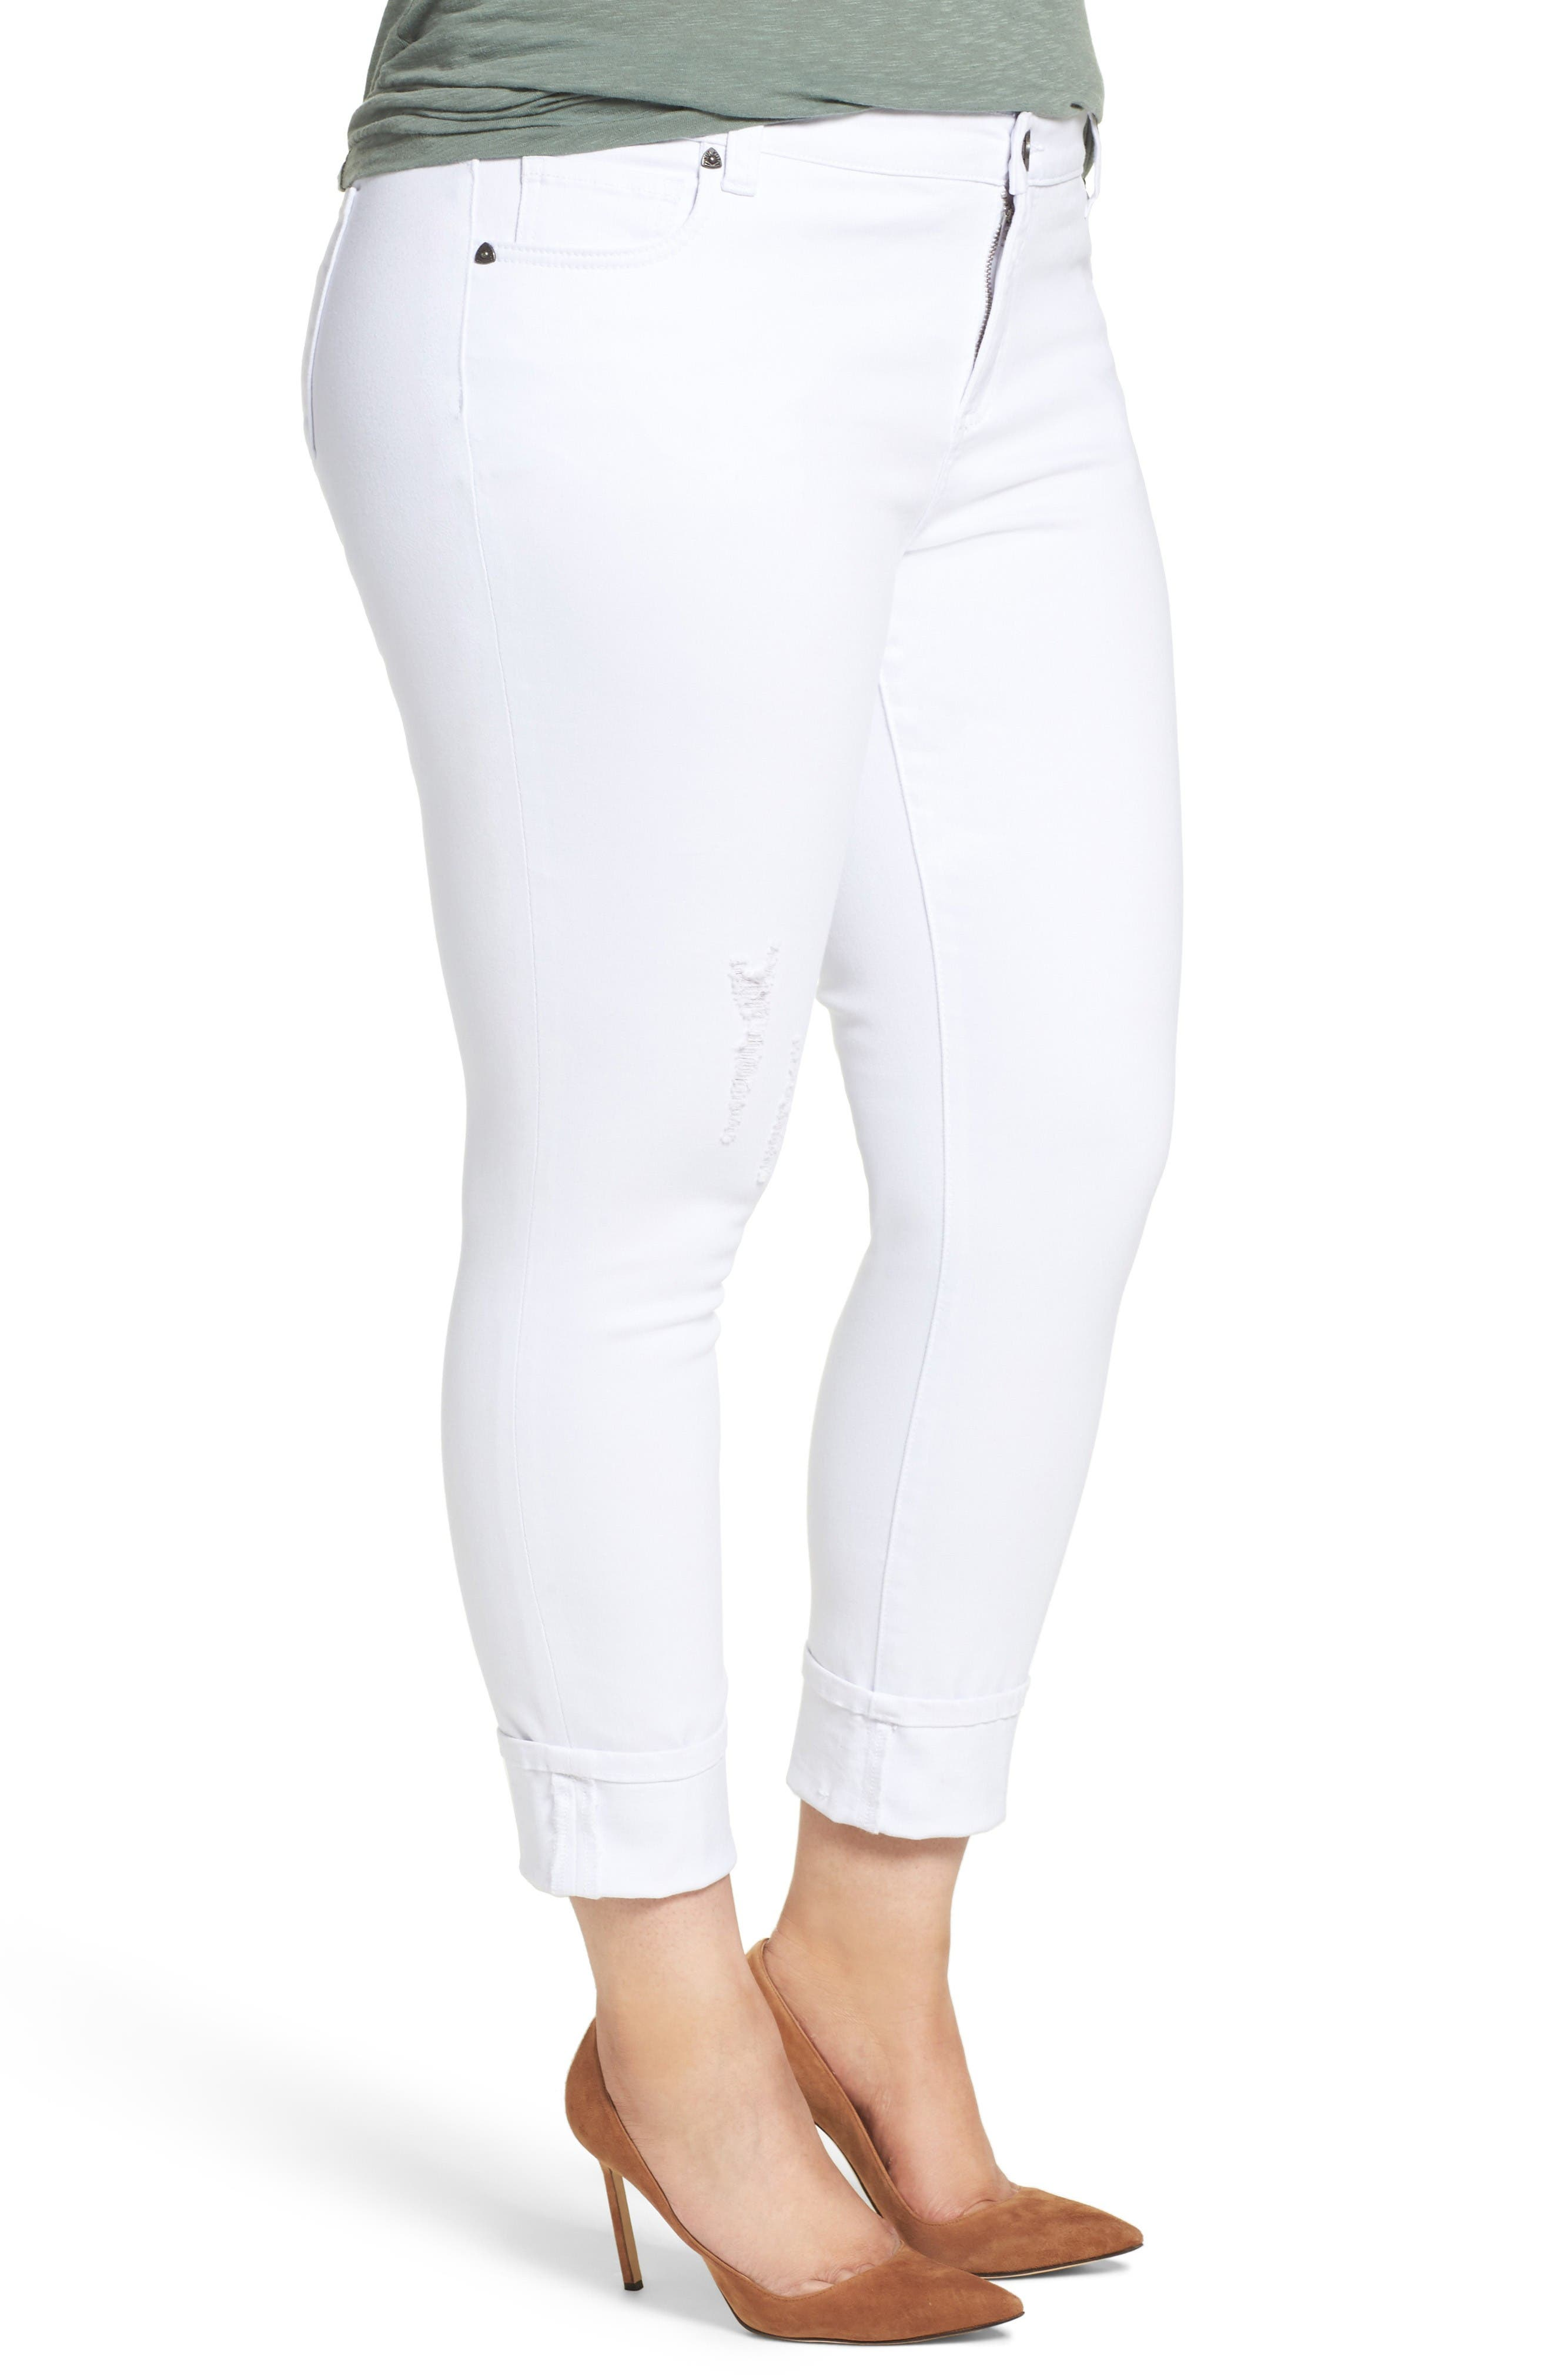 Alternate Image 3  - KUT from the Kloth Catherine Distressed Wide Cuff Boyfriend Jeans (Optic White) (Plus Size)